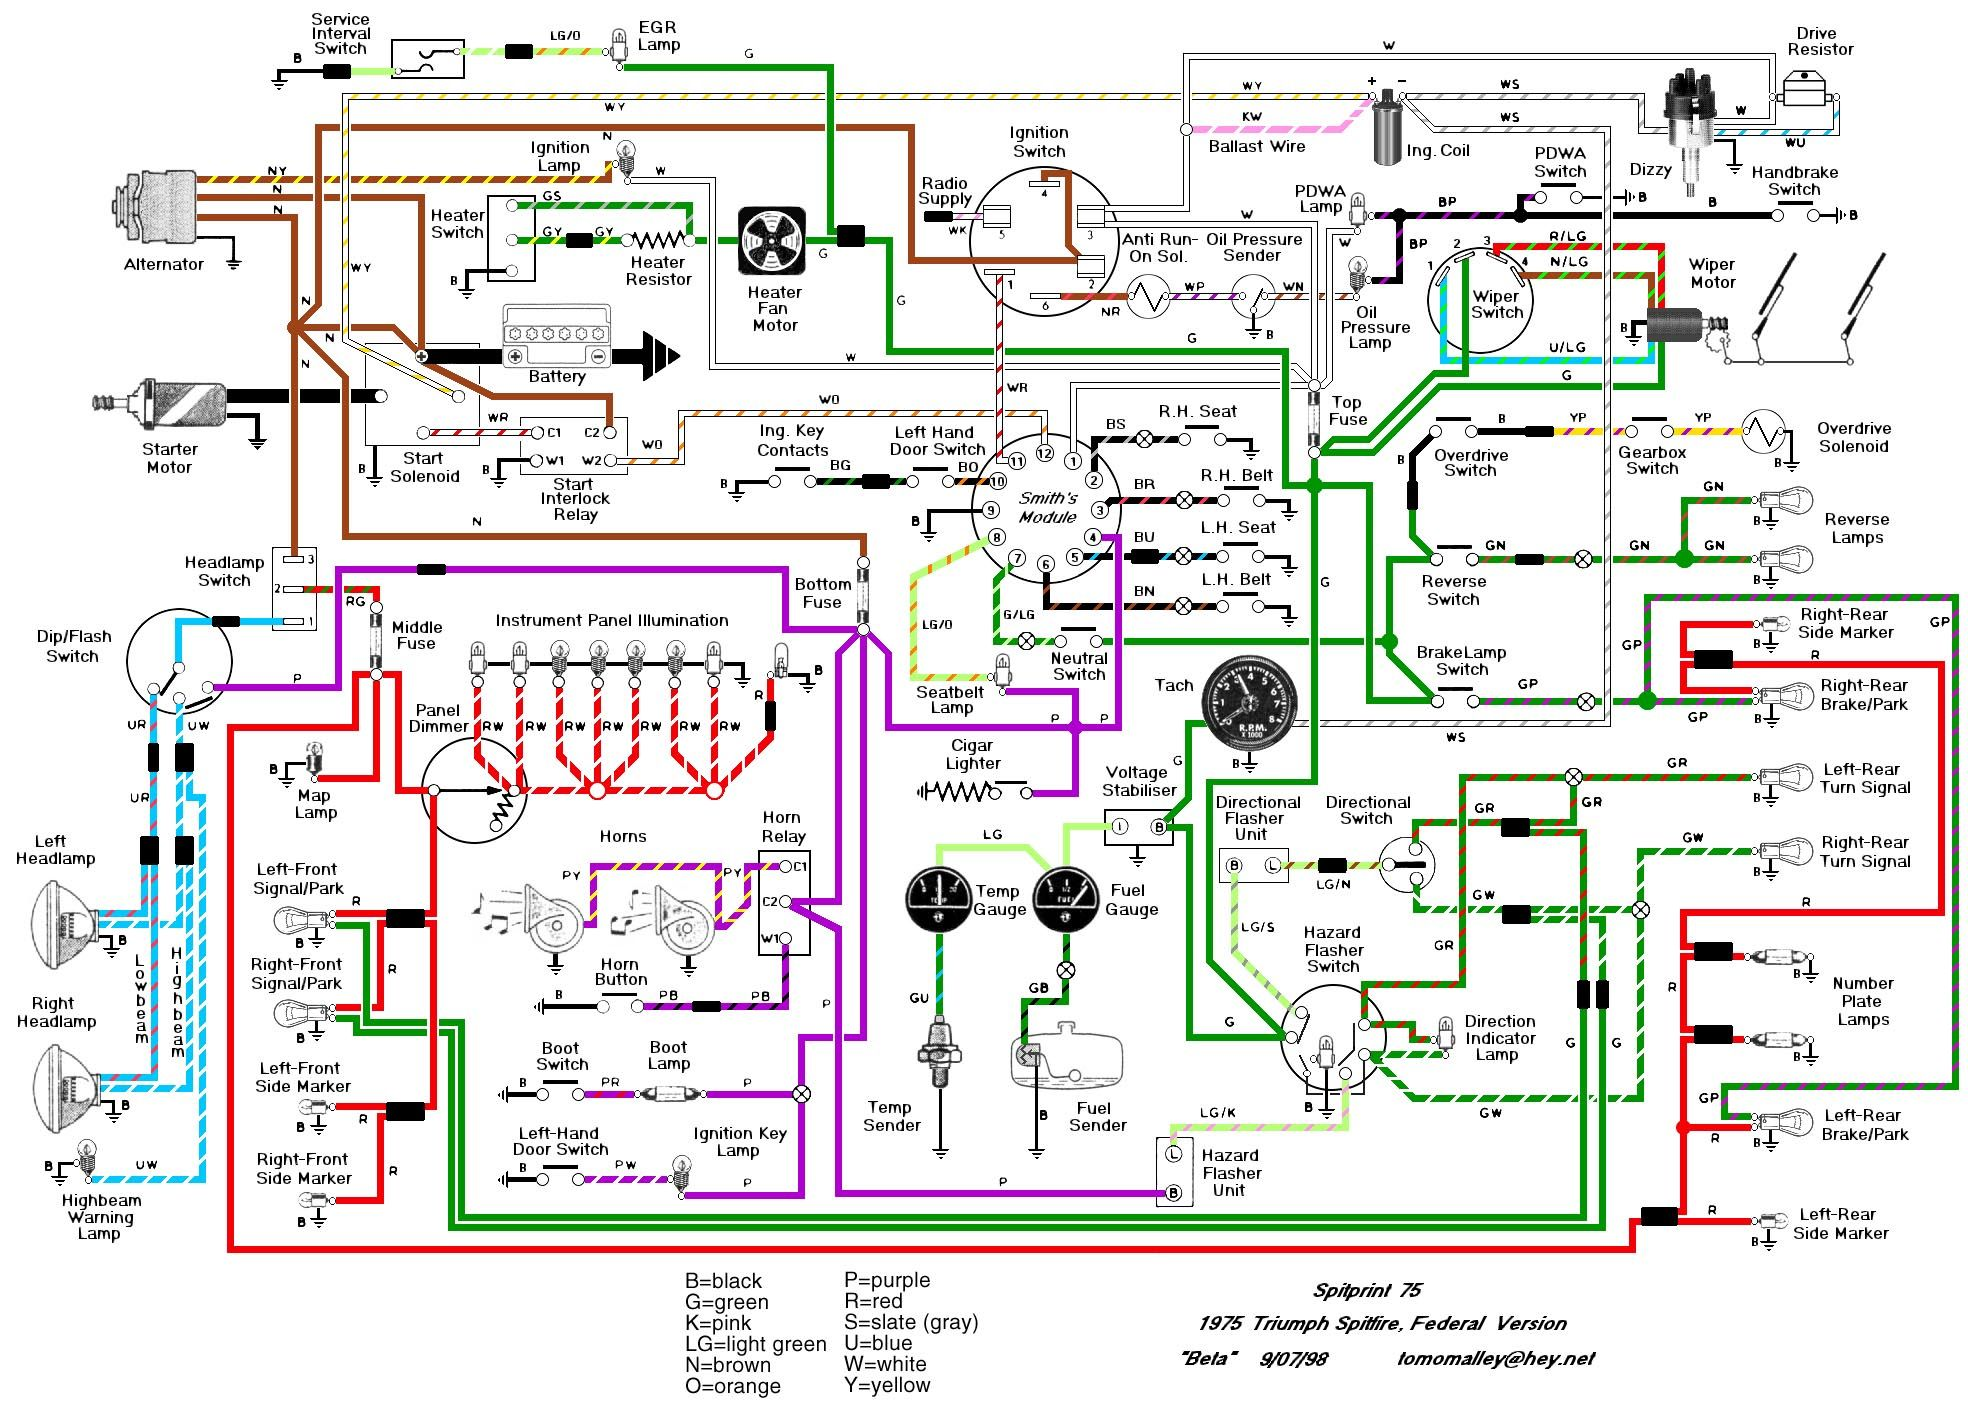 be29e78a9b223a9820997f058b4332e6 mgb wiring diagram atlas wiring diagram \u2022 wiring diagrams j mgb wiring harness installation at gsmportal.co